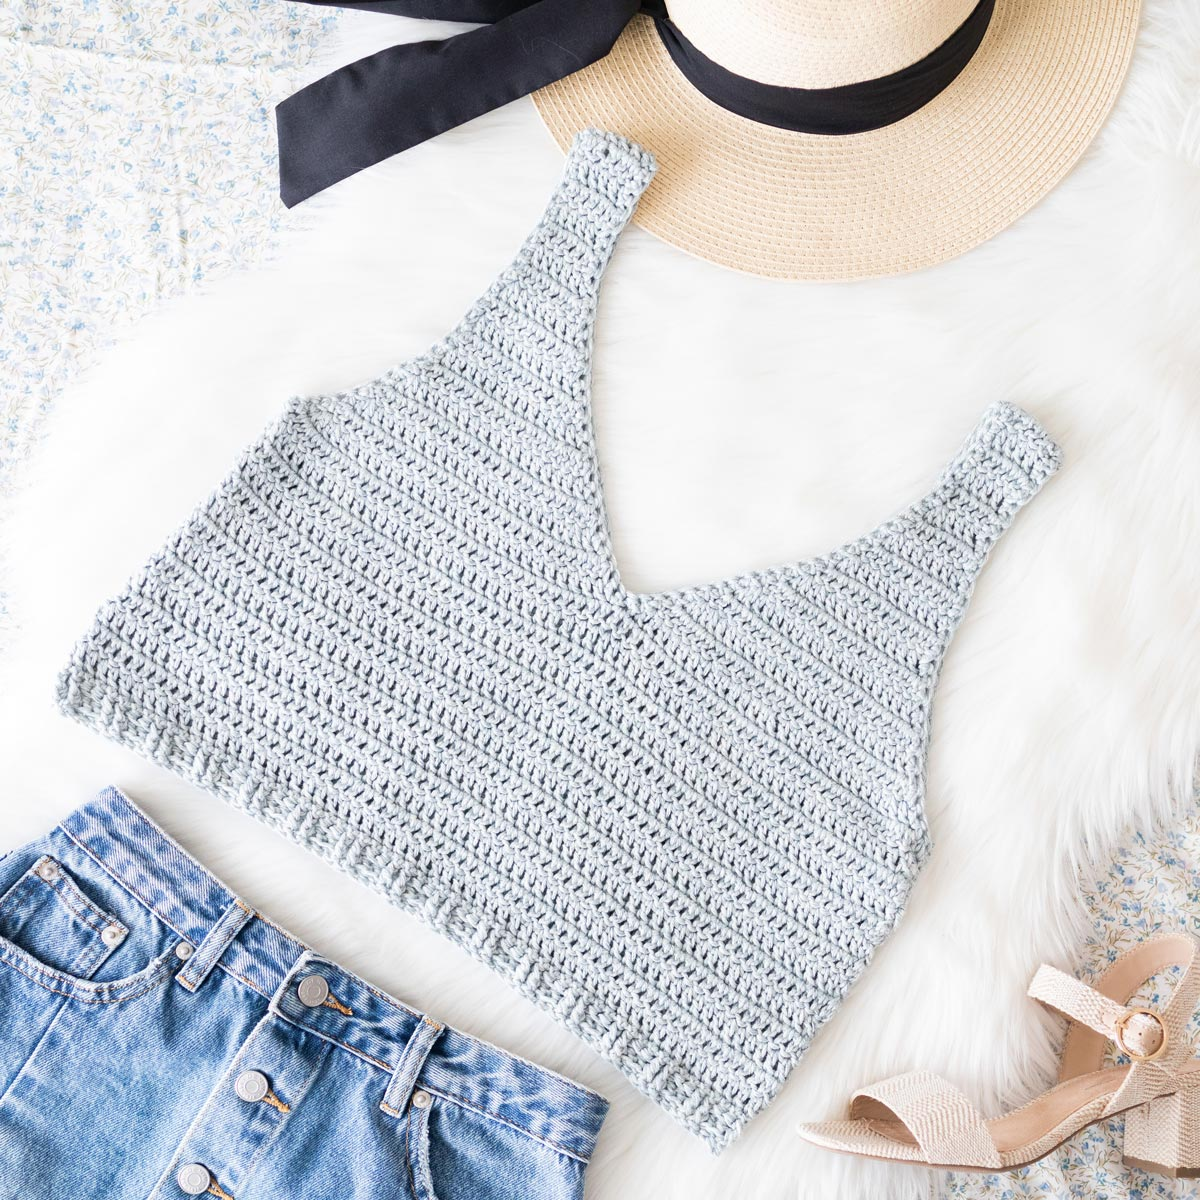 flat lay photo of easy v-neck crochet tank top in light blue denim yarn with jeans skirt and straw hat